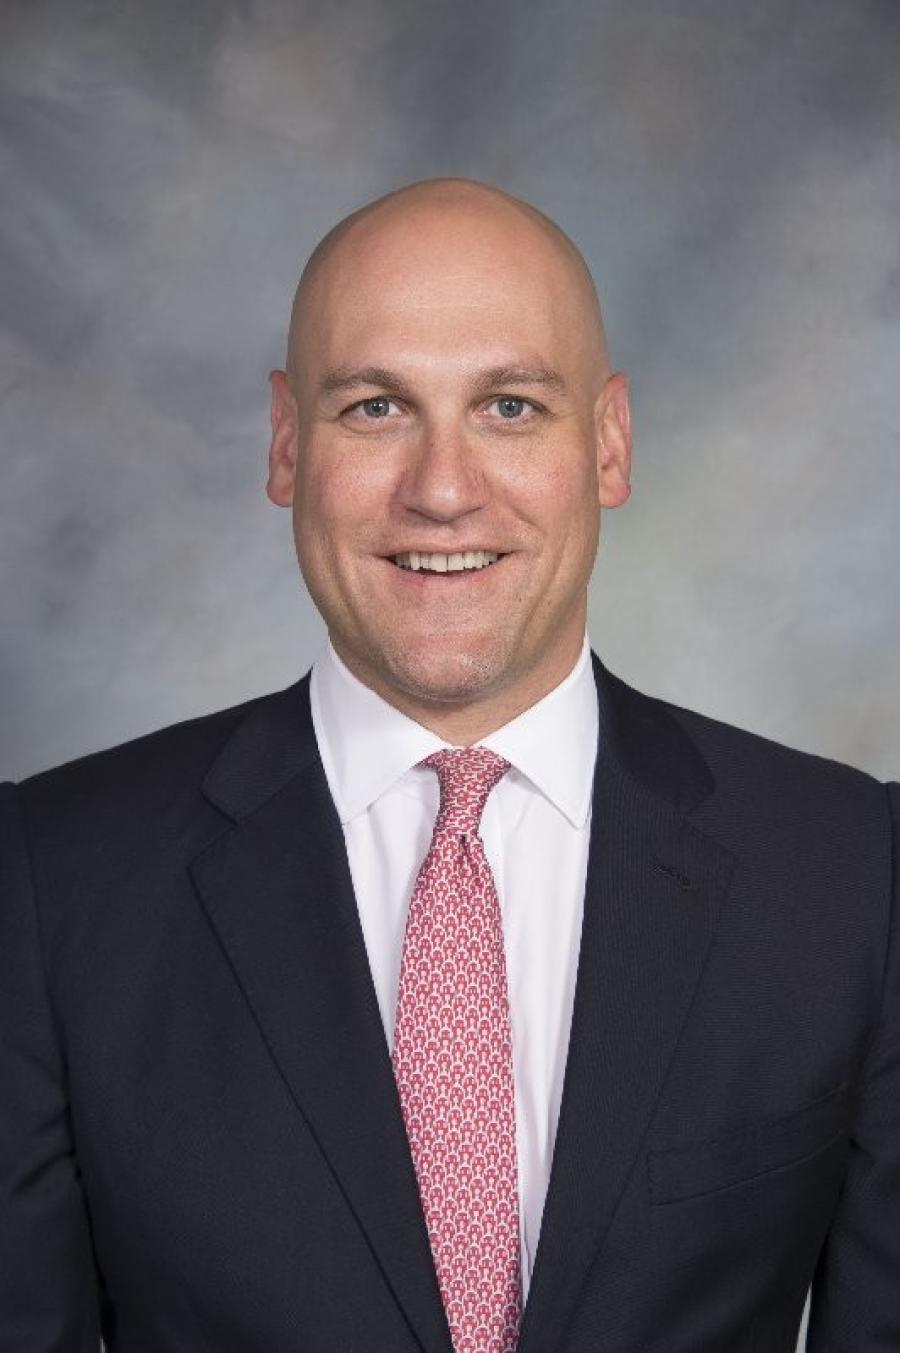 Ryan Greenawalt serves as chairman and CEO of Alta Equipment Group Inc.